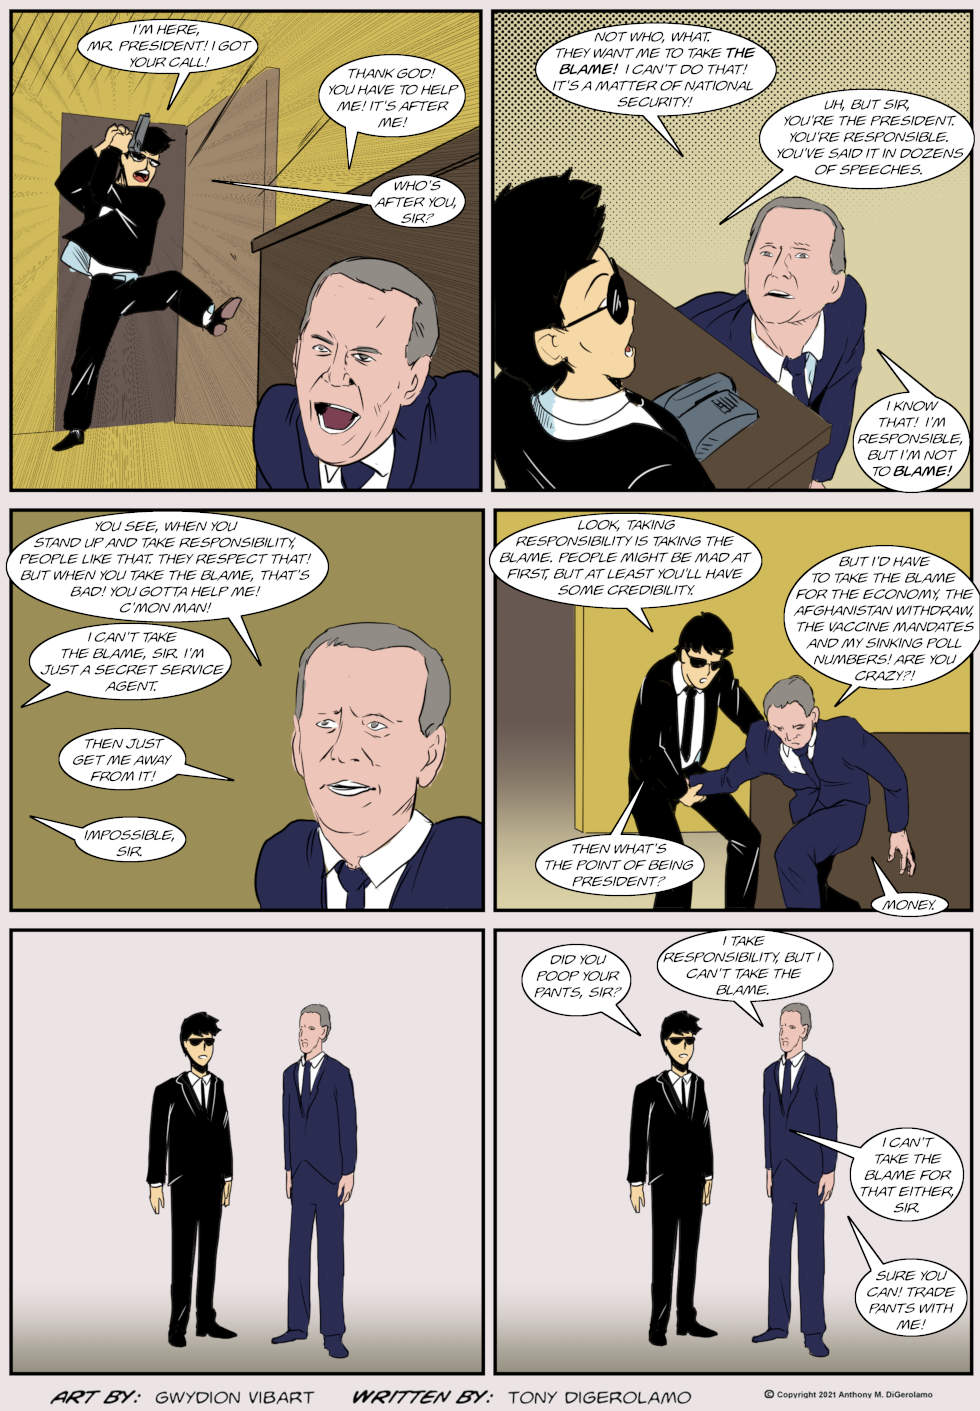 The Antiwar Comic: The Bane of All Presidents